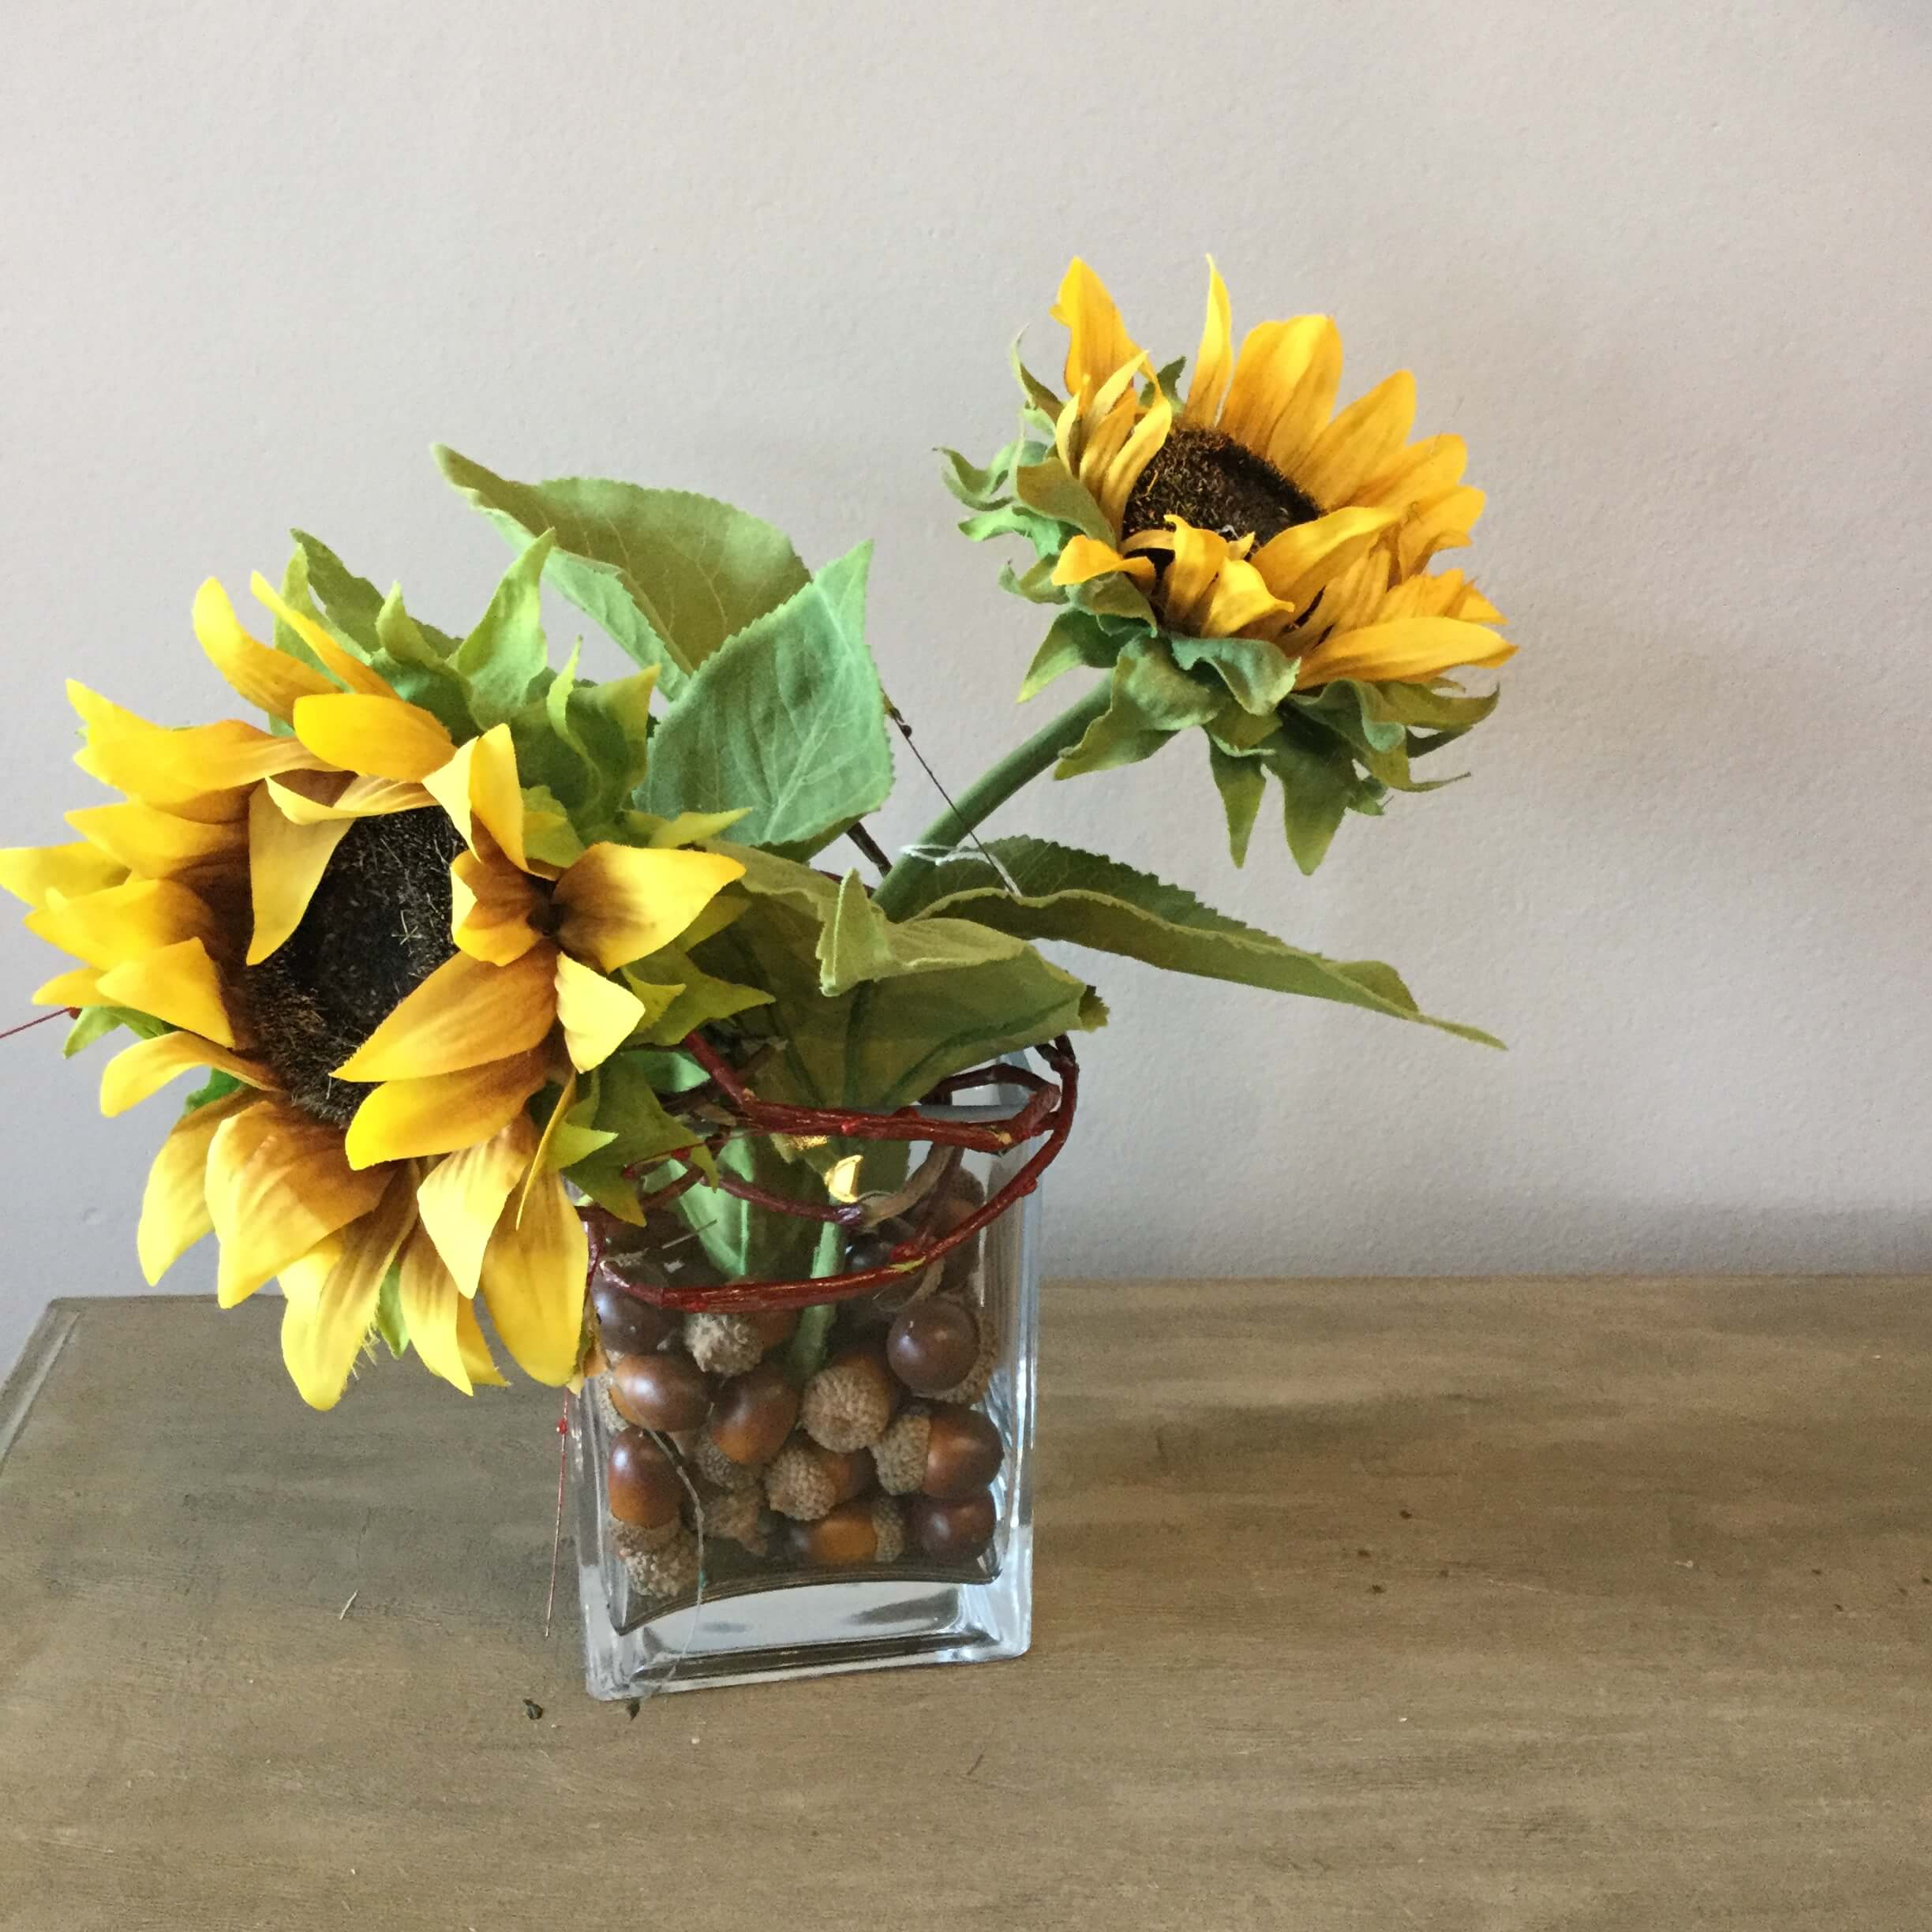 11 yellow sunflowers in glass vase with acorns and vine ps 11 yellow sunflowers in glass vase with acorns and vine ps flowers and interiors reviewsmspy